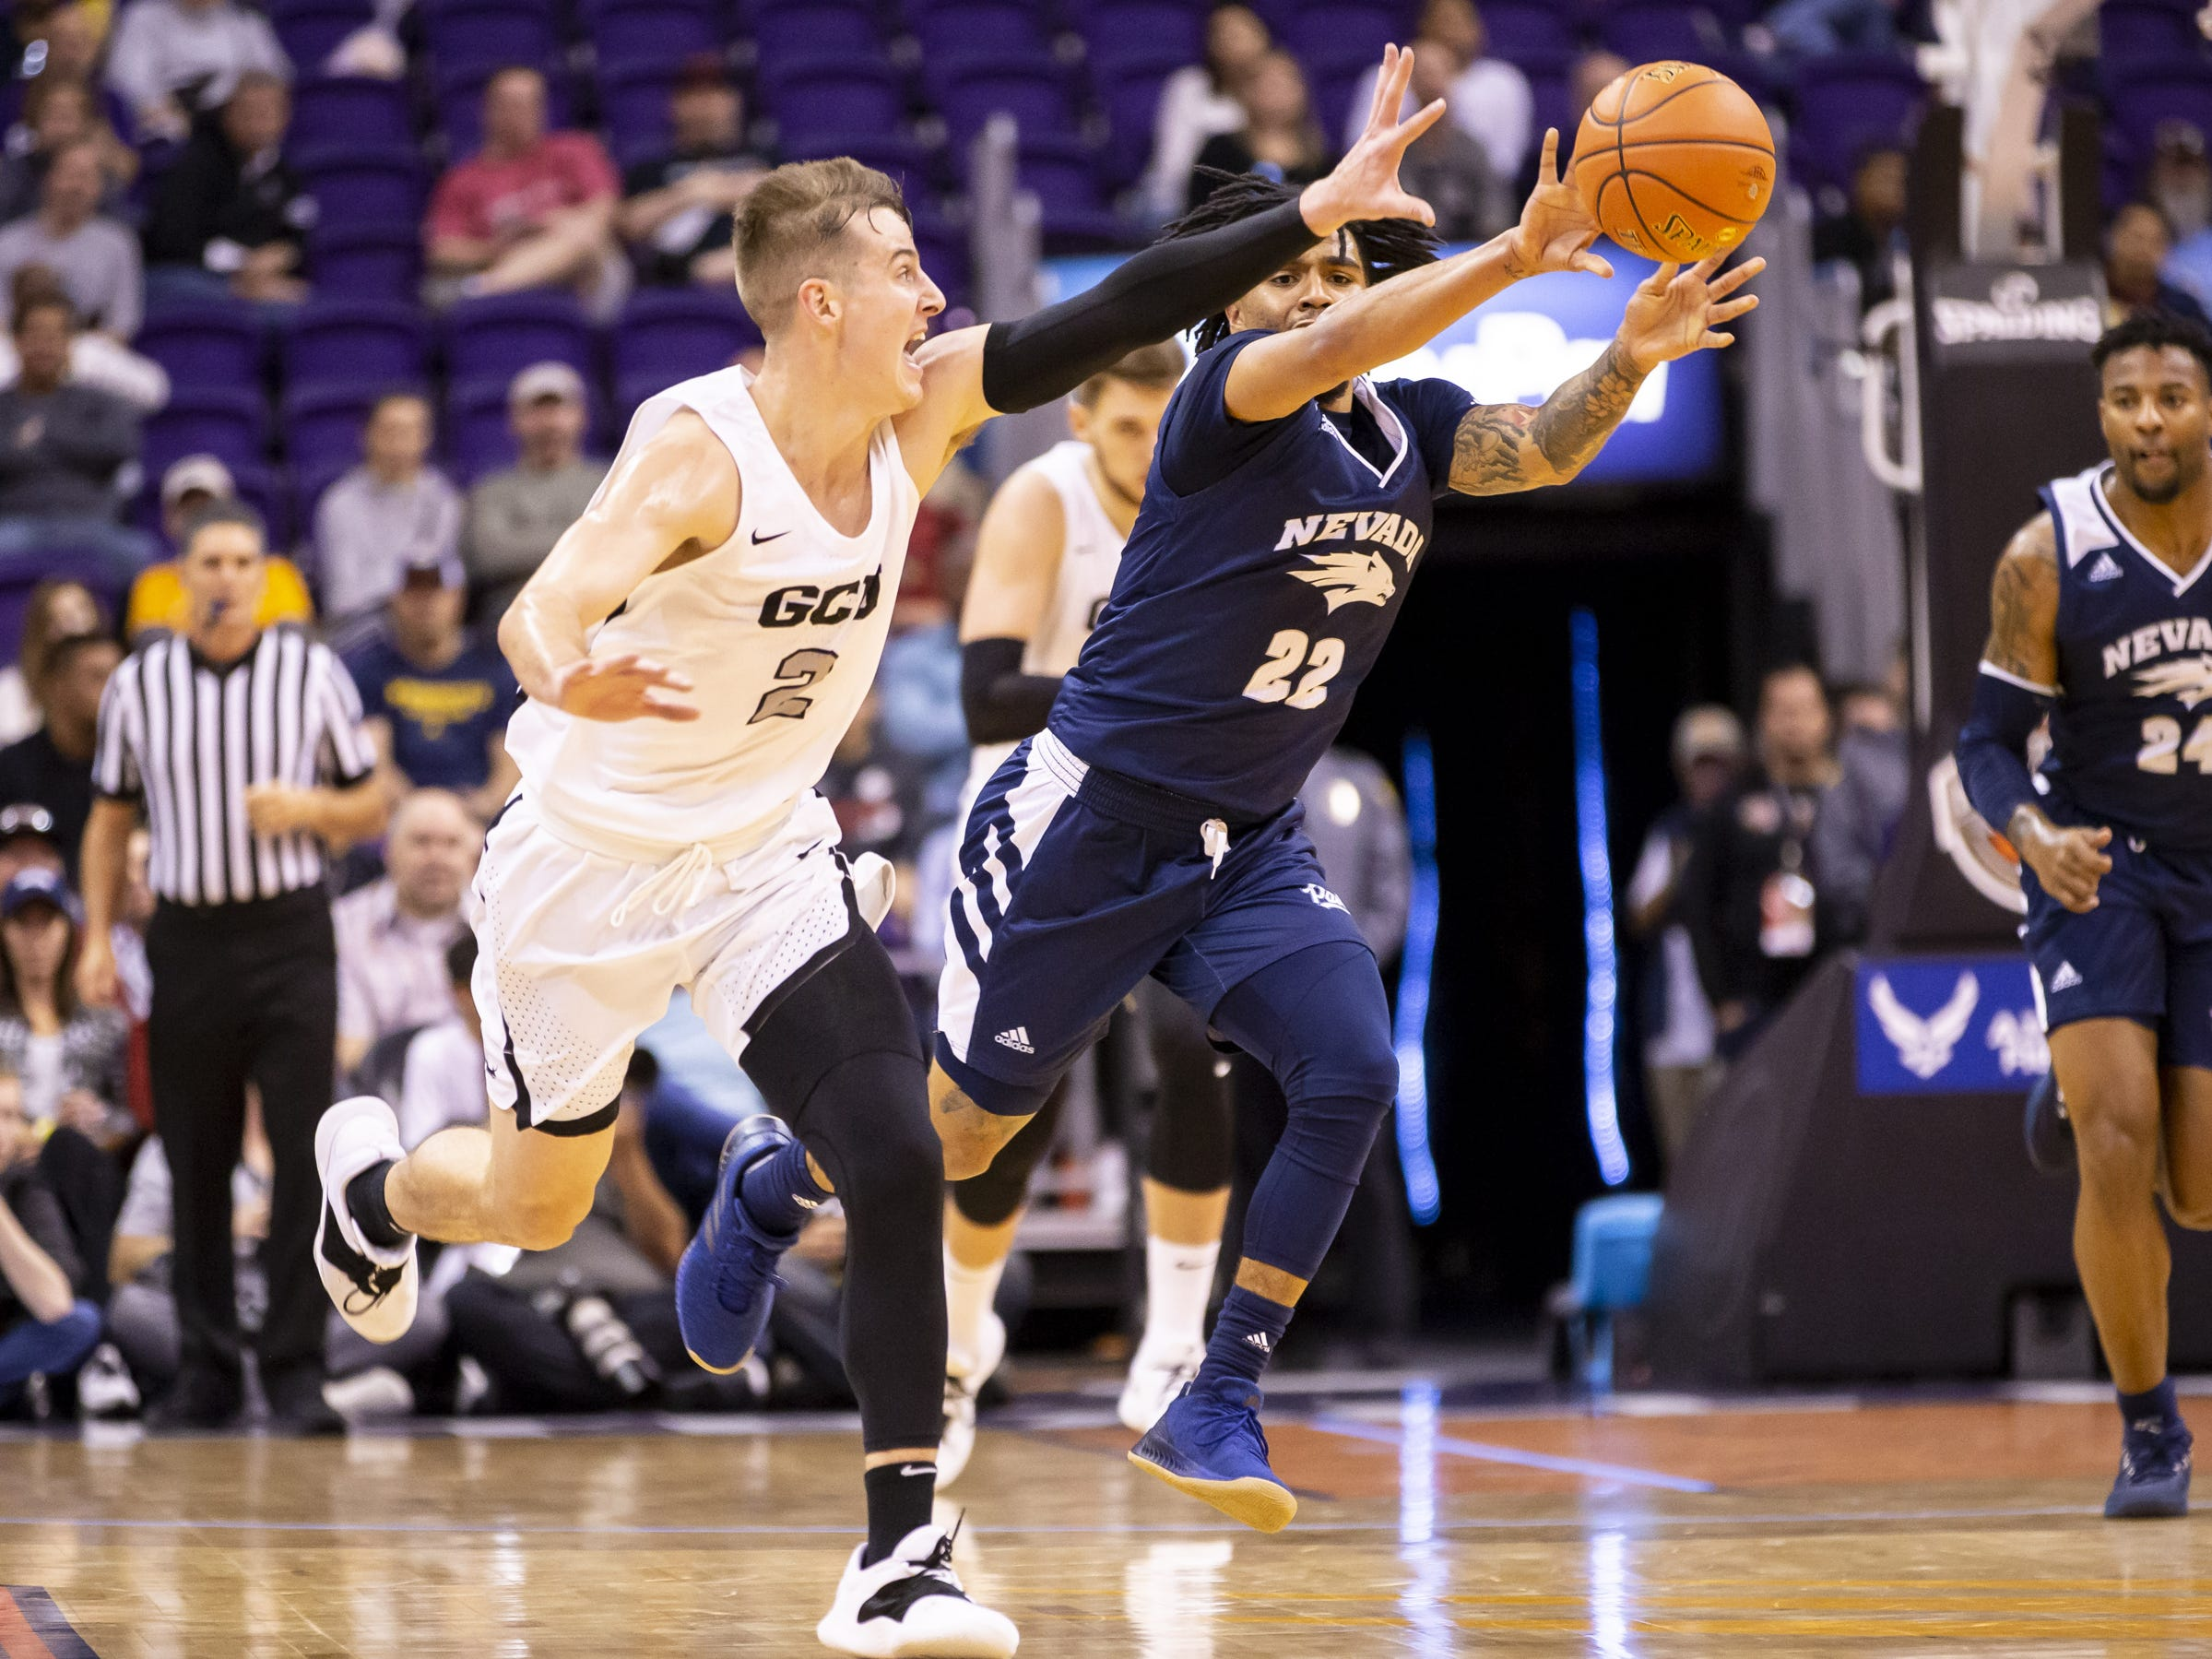 Guard Jazz Johnson (22) of Nevada Wolf Pack passes against guard Trey Drechsel (2) of the Grand Canyon Antelopes during the 2018 Jerry Colangelo Classic at Talking Stick Resort Arena on Sunday, December 9, 2018 in Phoenix, Arizona.